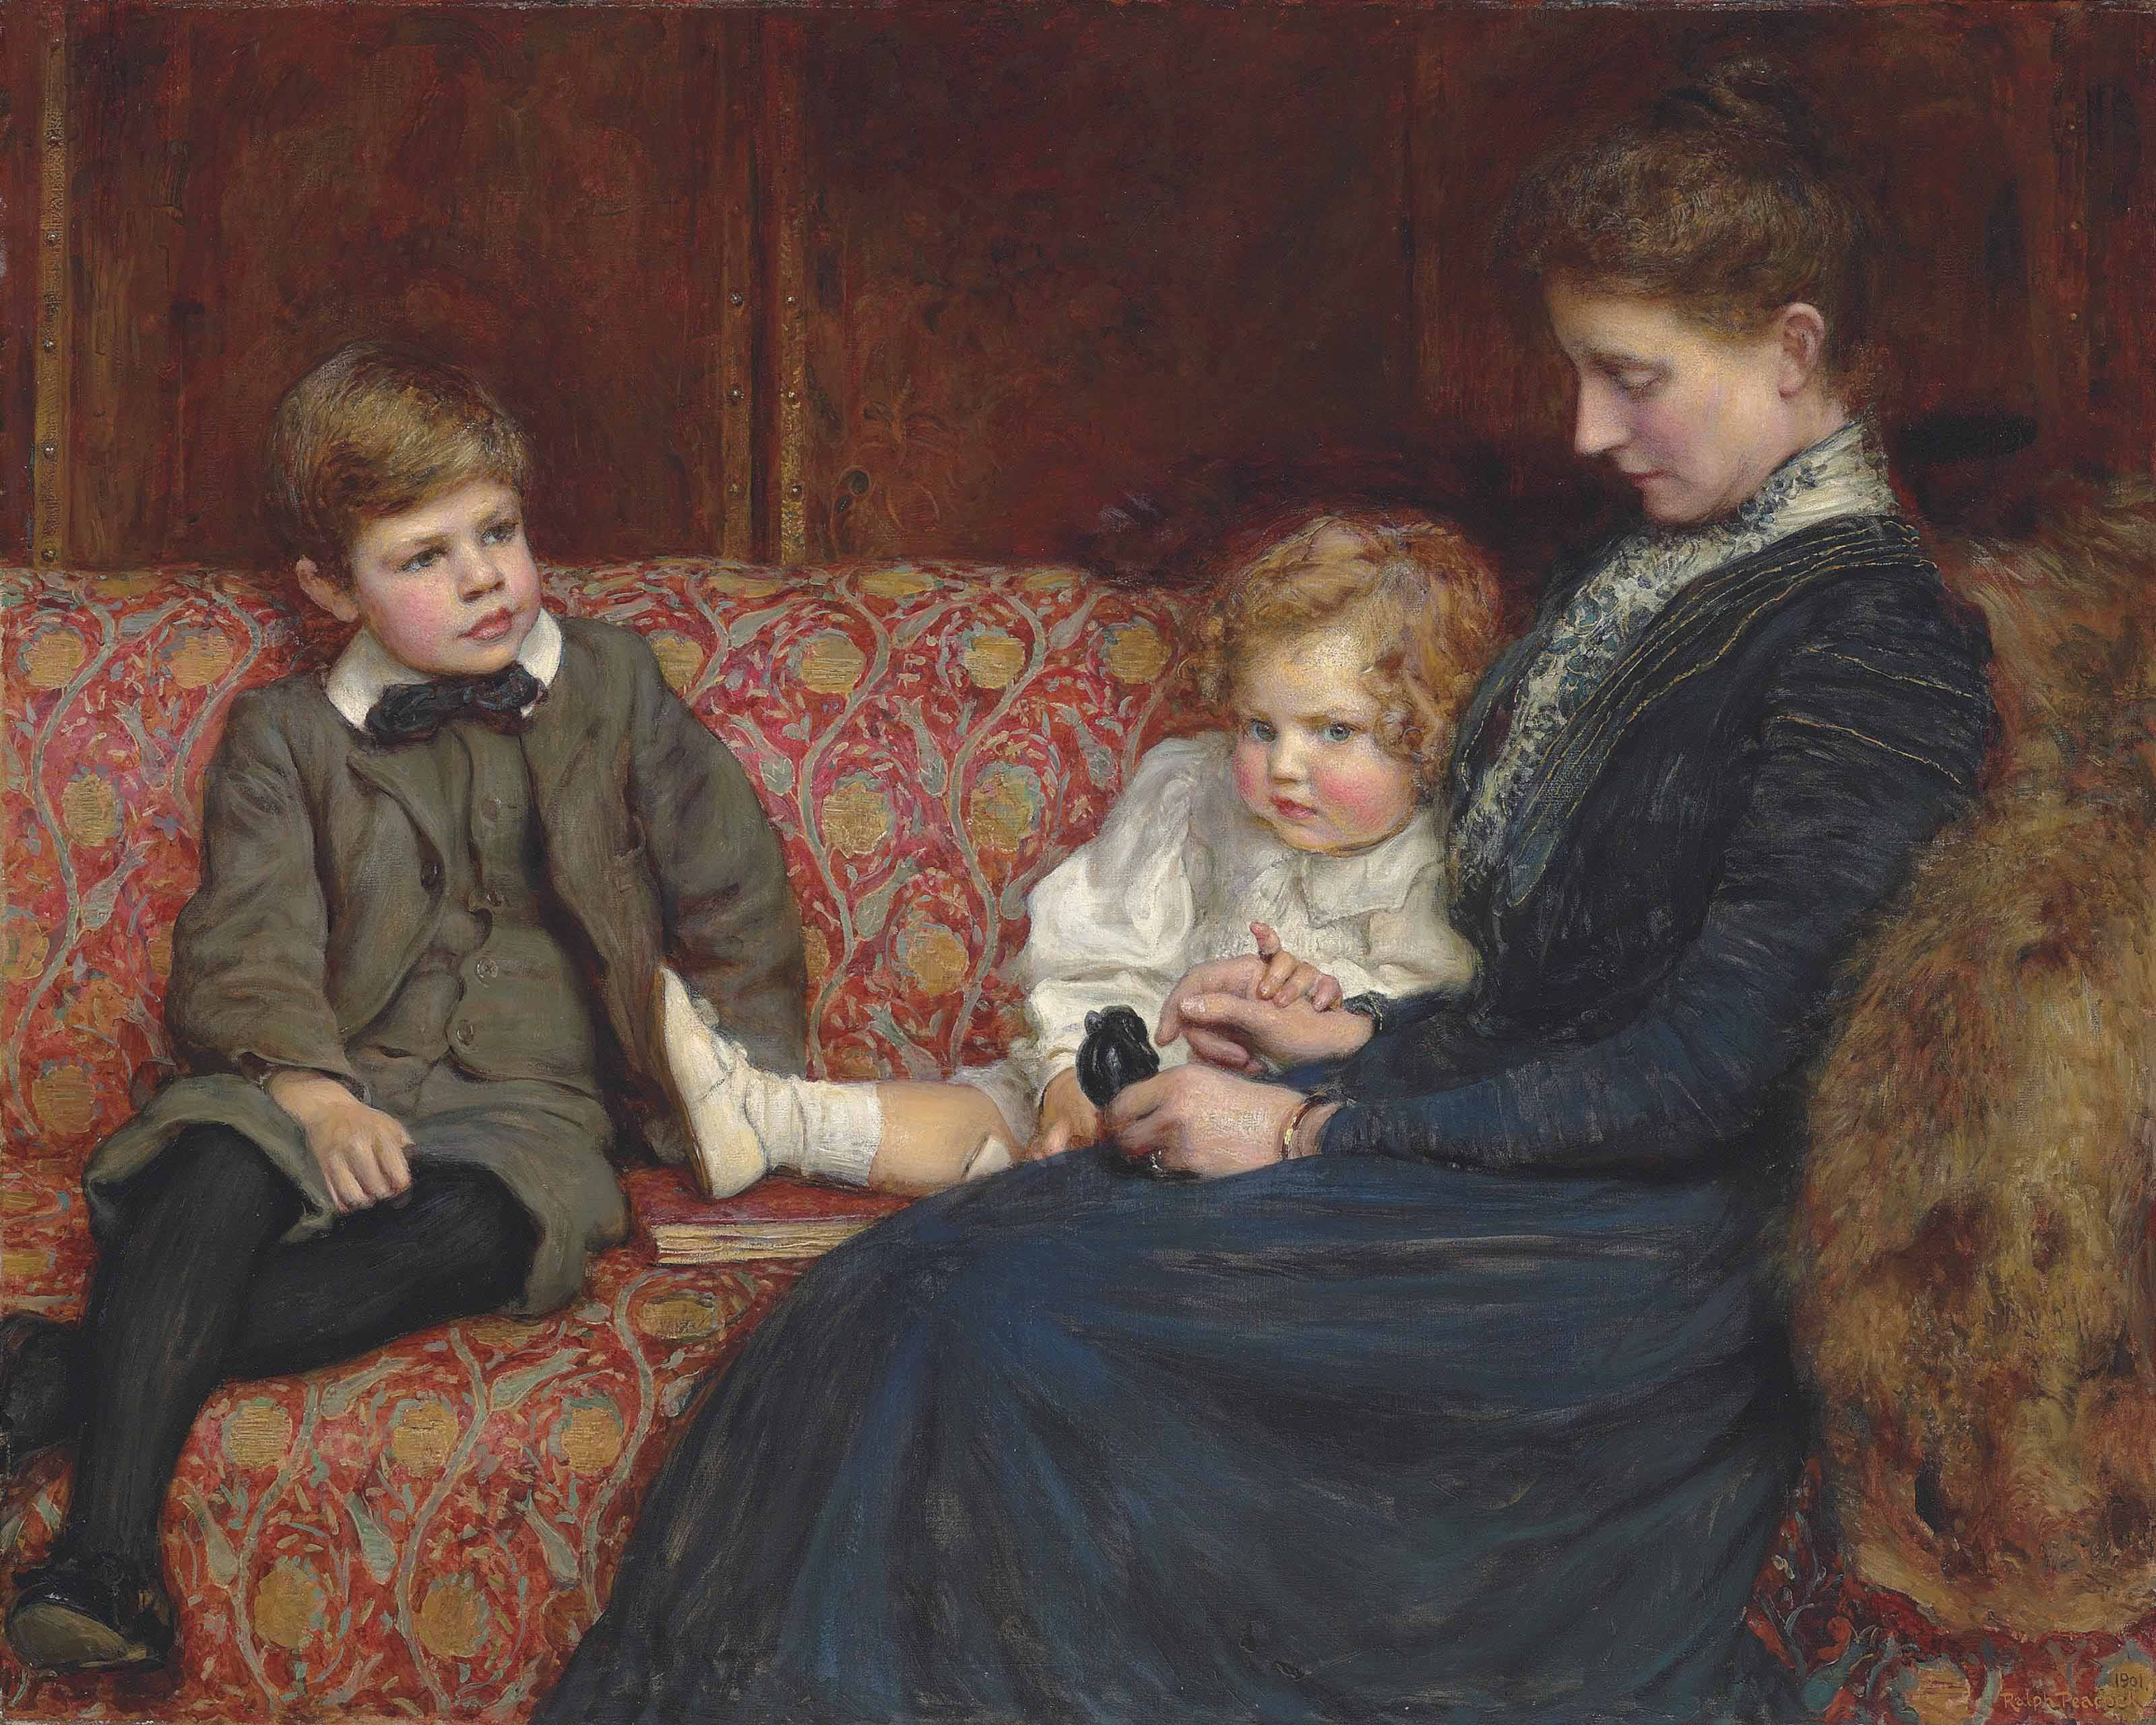 Portrait of Mrs Evelyn Mary Agnew, neé Naylor, wife of (Charles) Morland Agnew (1855-1931), with two of their children